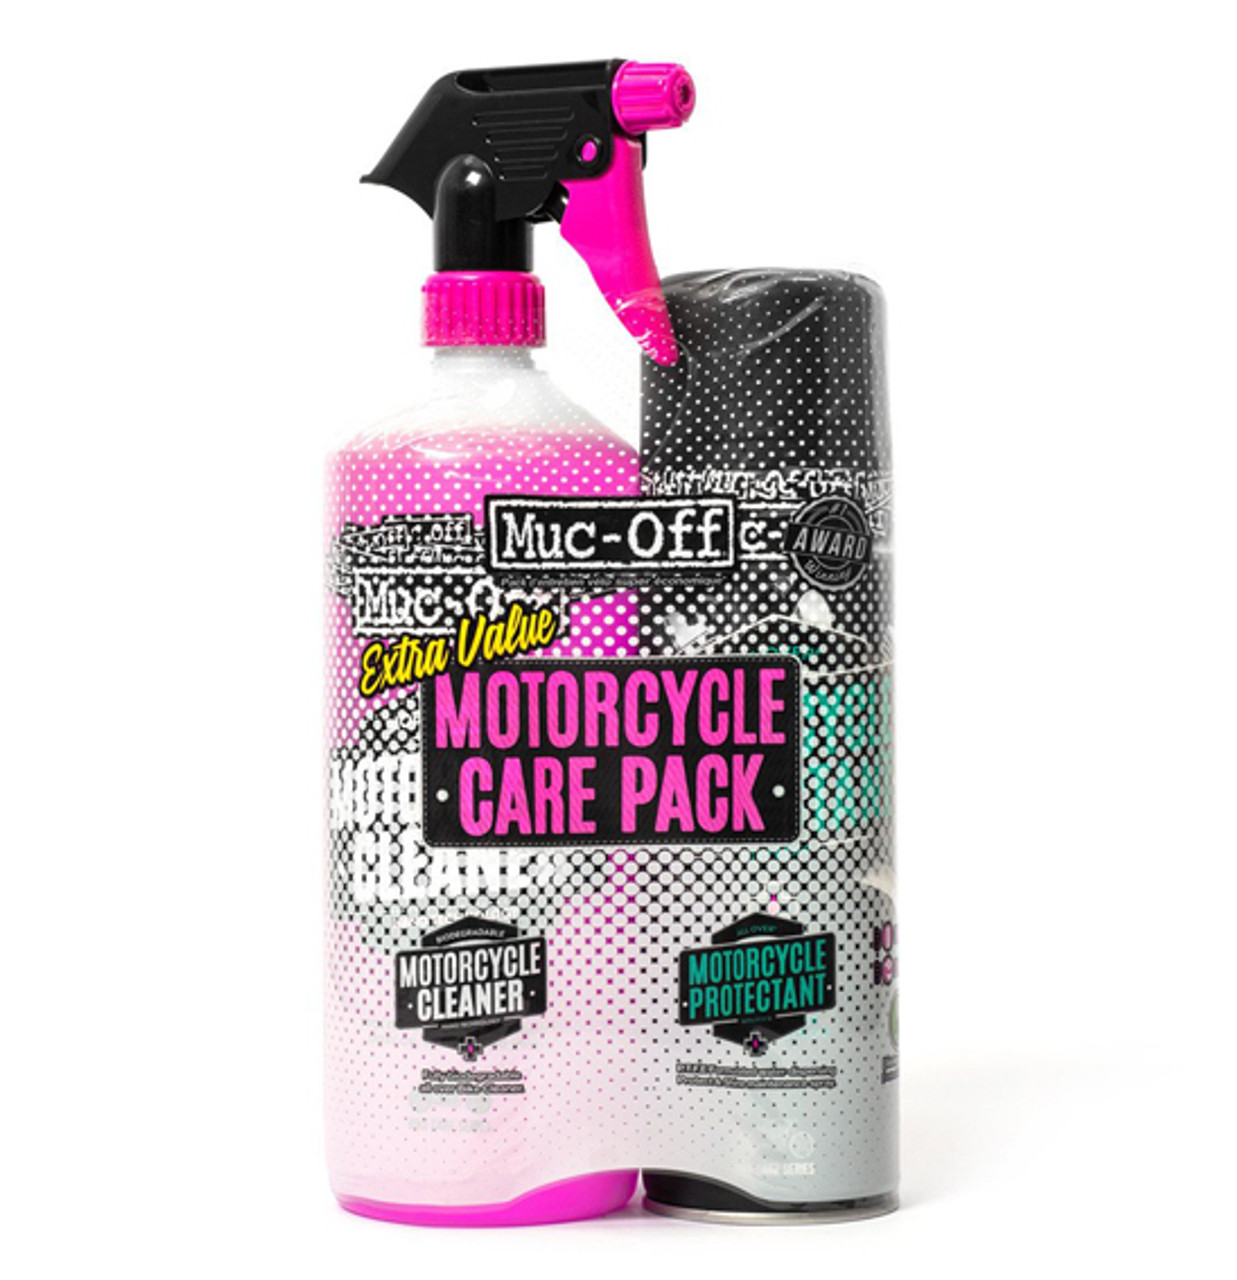 Muc-Off Motorcycle Care Duo Kit (#625)